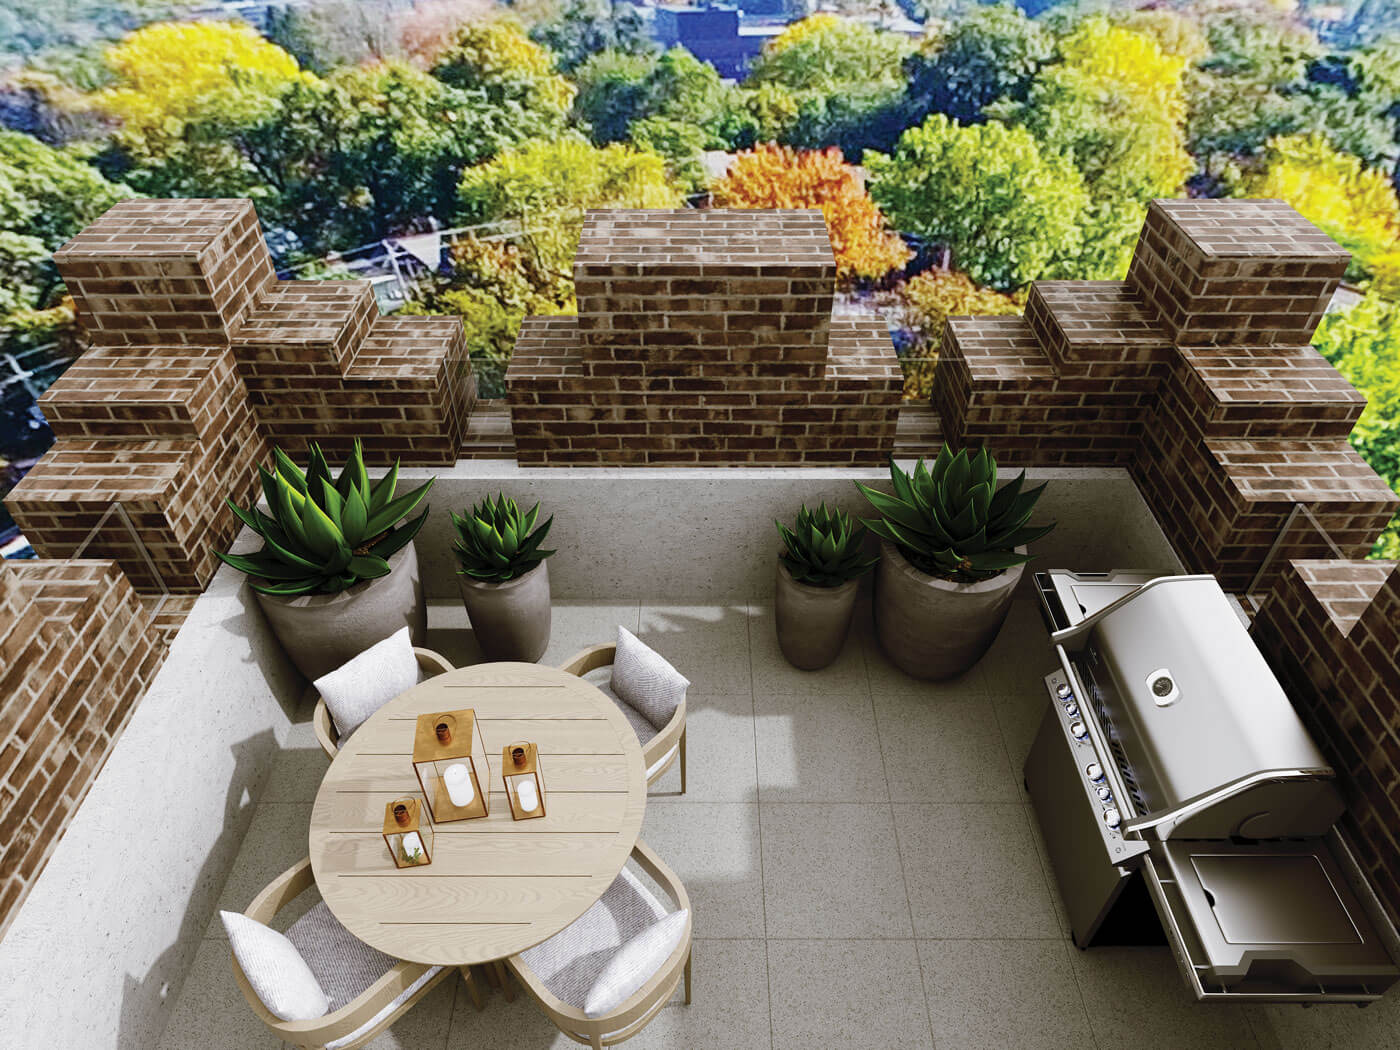 Terrace with barbecue, table, chairs, and plants framed by brick architectural details.